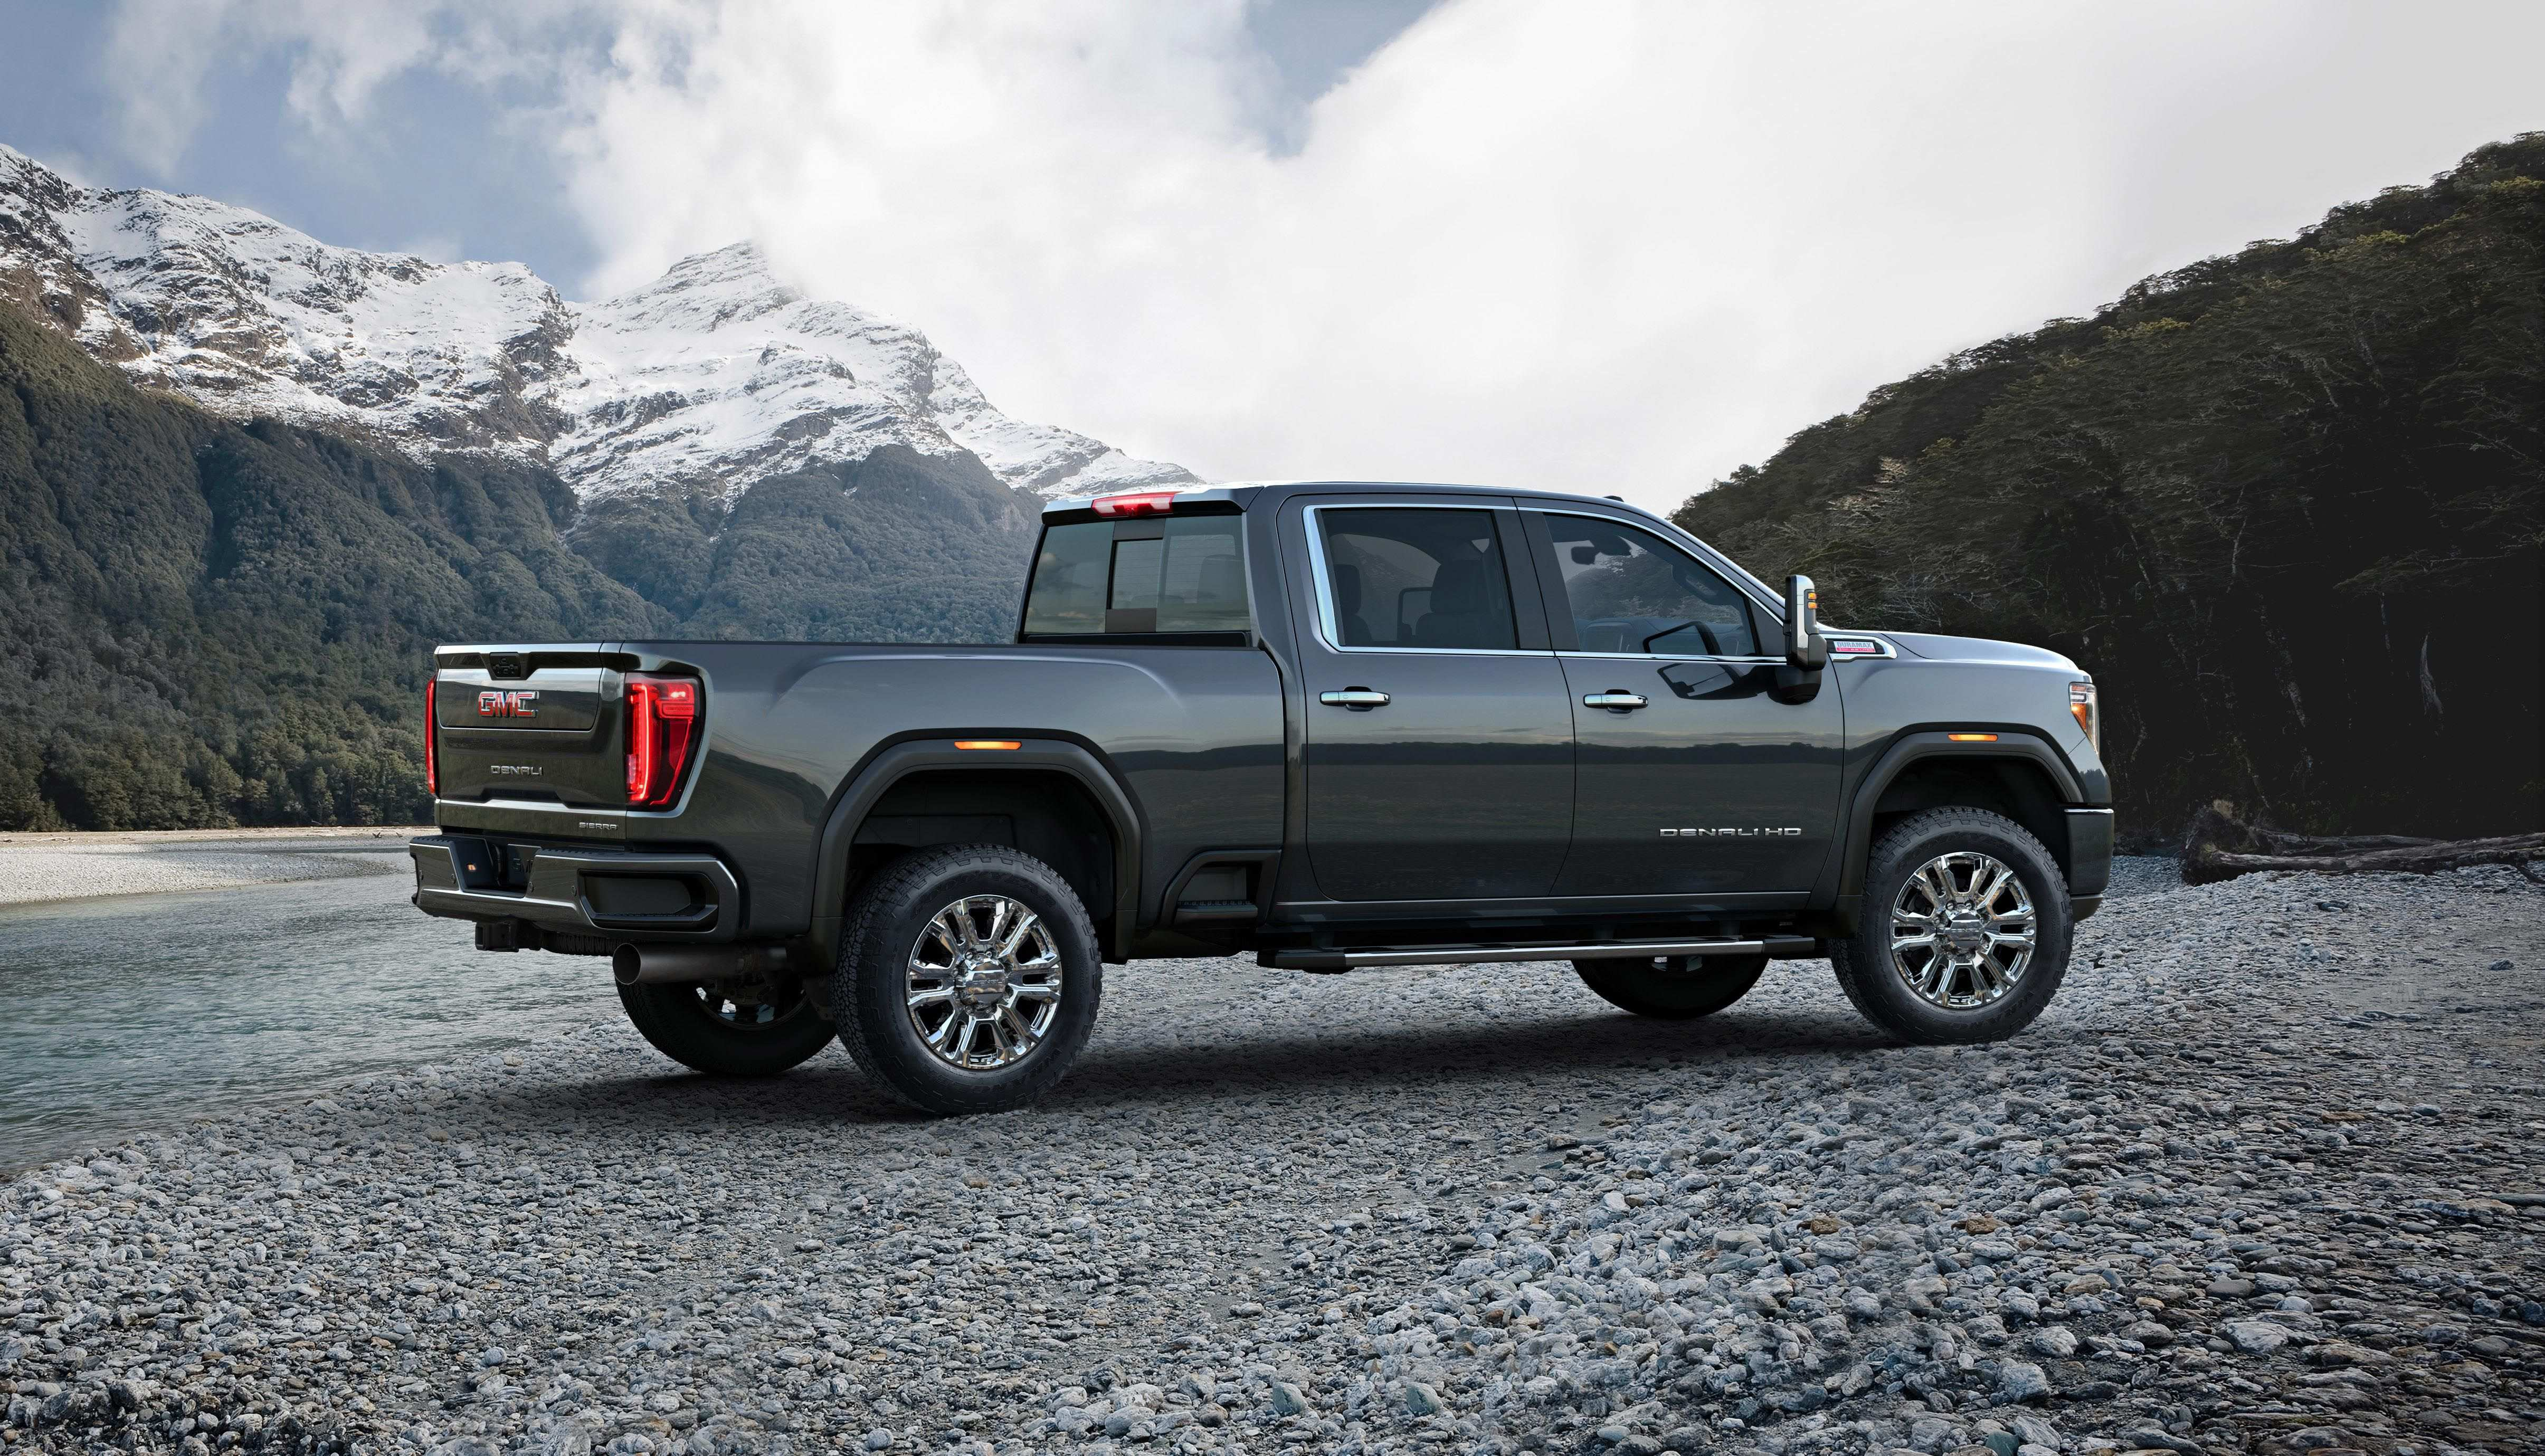 51 Great When Do The 2020 Chevrolet Trucks Come Out Pictures by When Do The 2020 Chevrolet Trucks Come Out